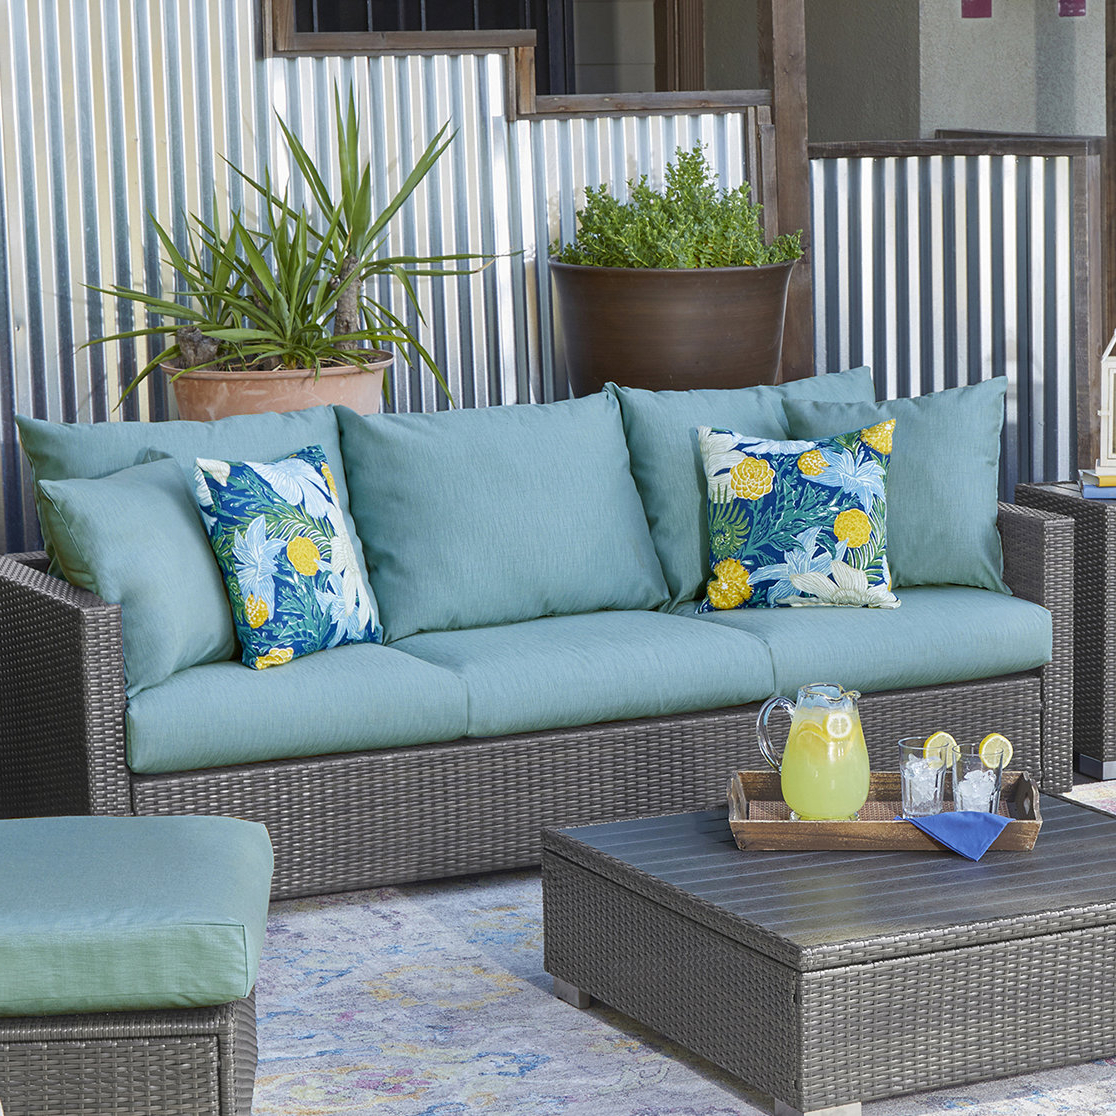 Mcmanis Patio Sofa With Cushion In Well Known Mcmanis Patio Sofas With Cushion (View 9 of 20)